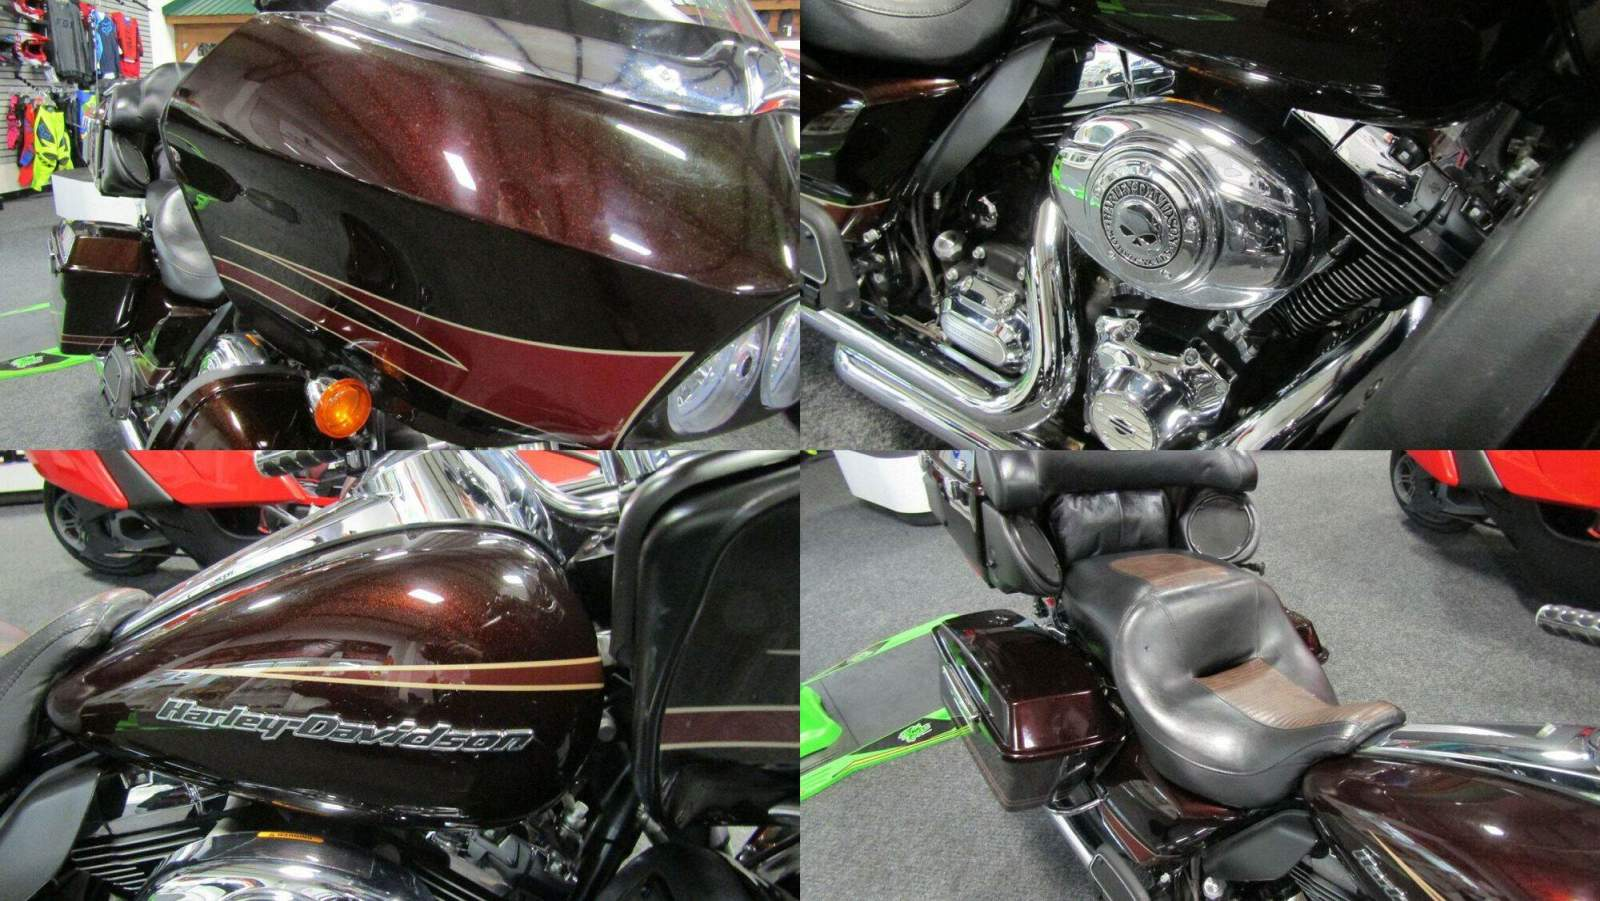 2011 Harley-Davidson Touring Road Glide Ultra Rootbeer used for sale